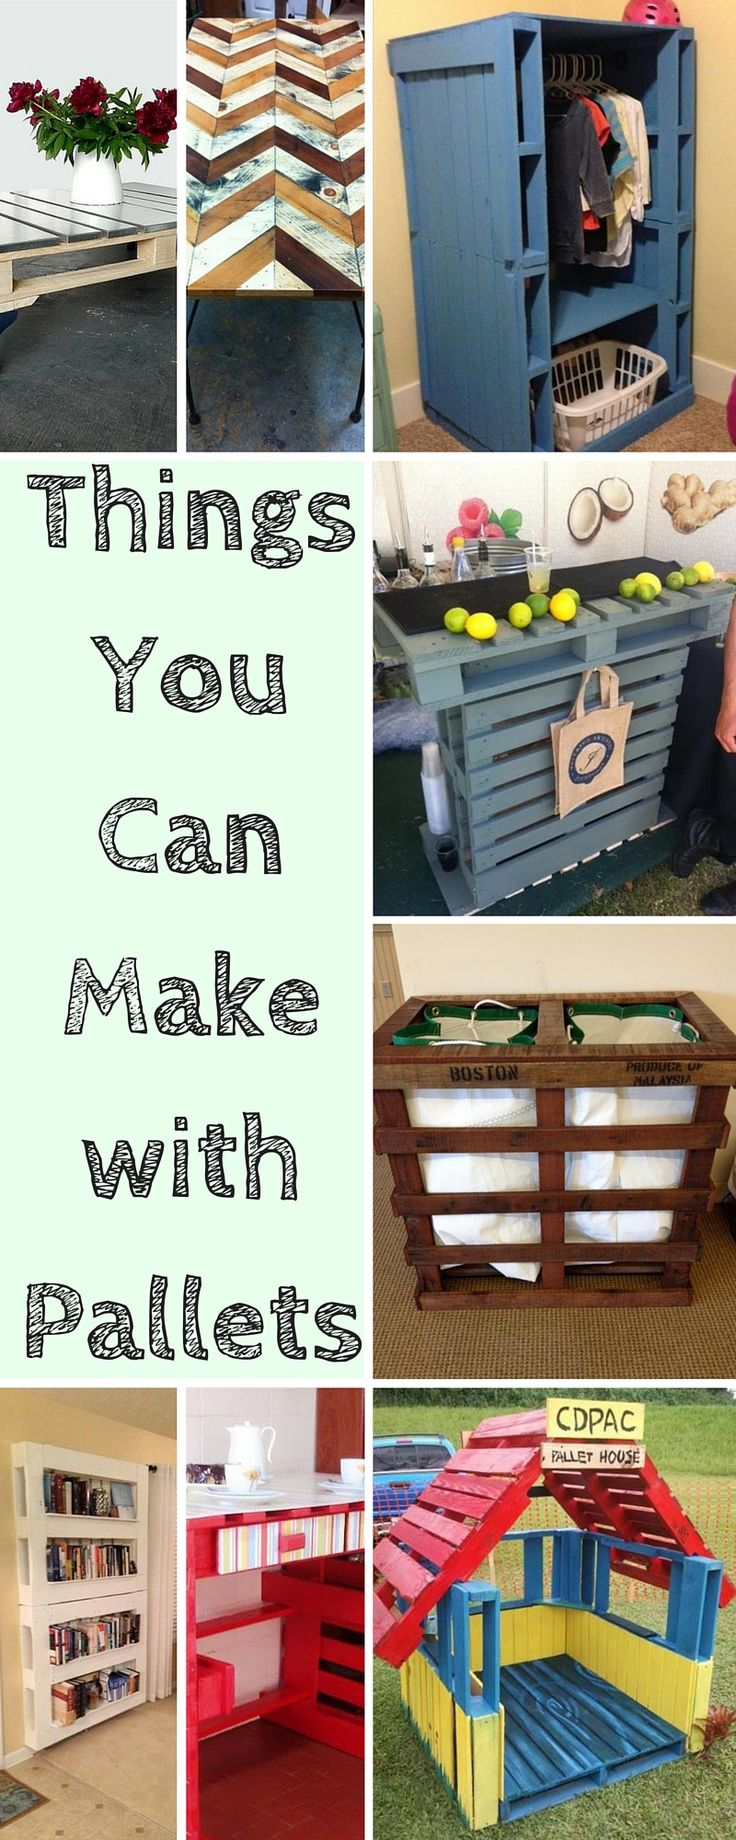 best 25 diy recycle ideas on pinterest recycling ideas recycling and light bulb vase. Black Bedroom Furniture Sets. Home Design Ideas